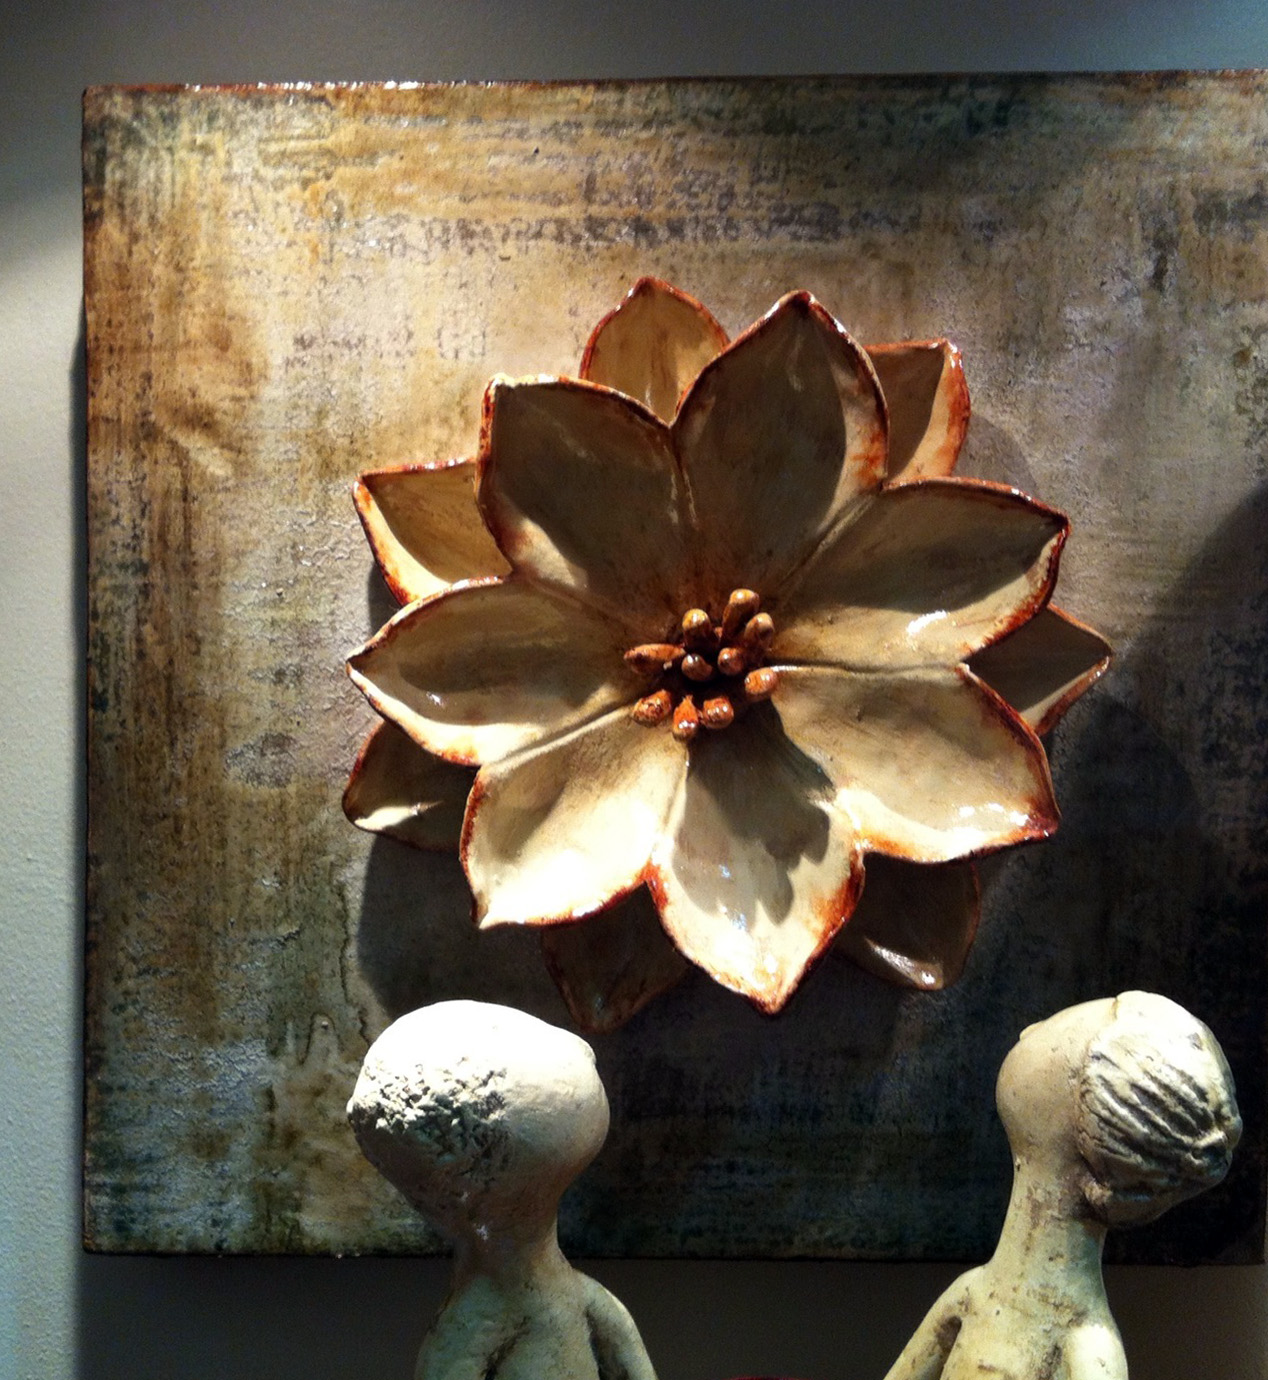 Mexican Artisans Bring New Home Decor to Atlanta Design